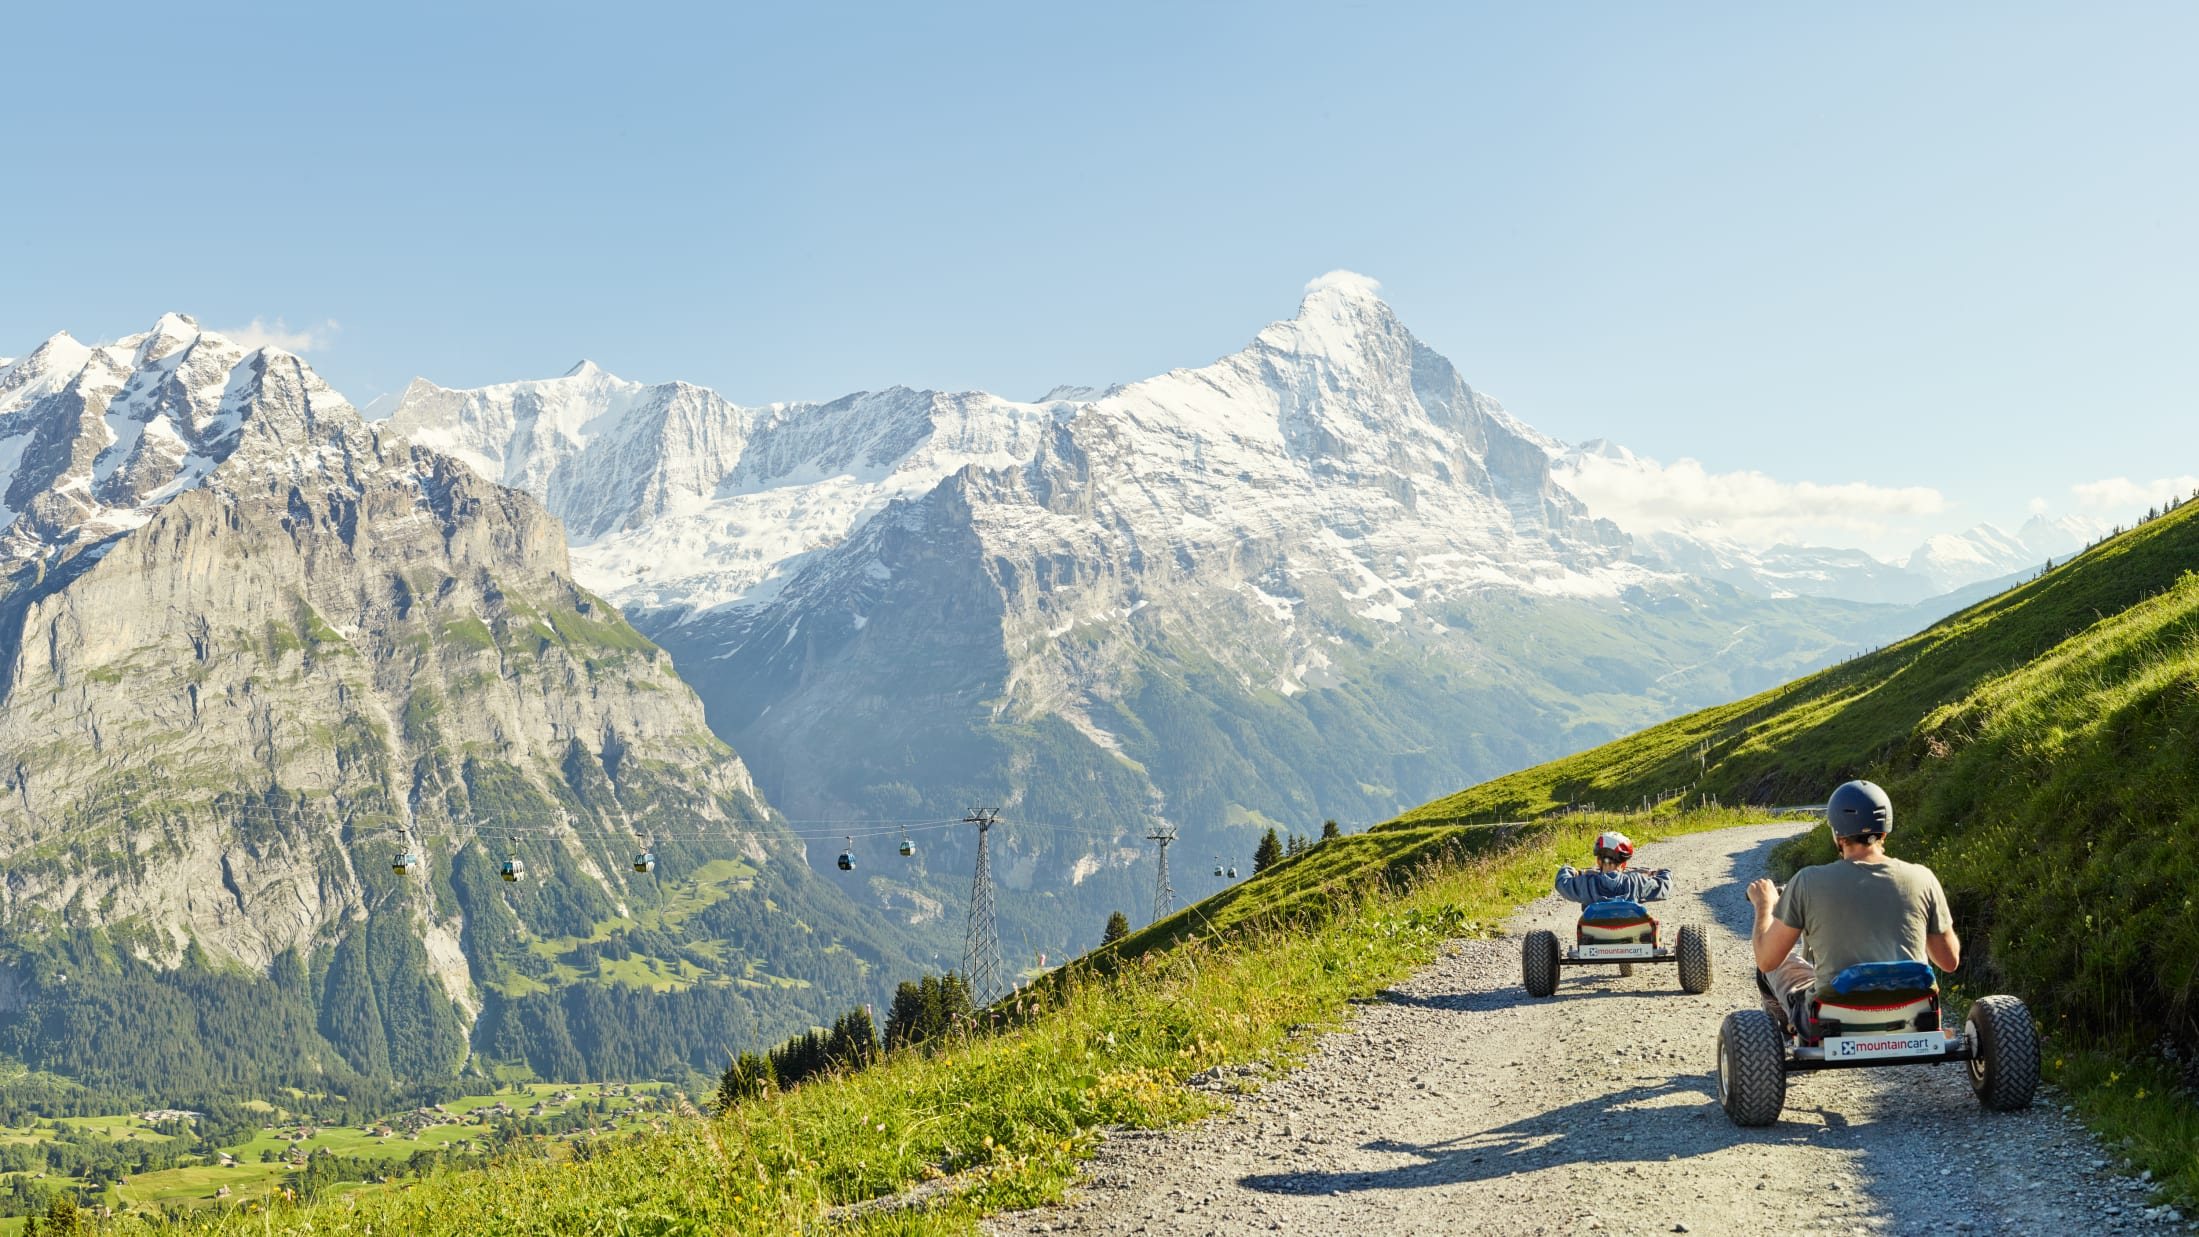 [Translate to English:] First Mountaincart Panorama Eiger Wetterhorn Grindelwald